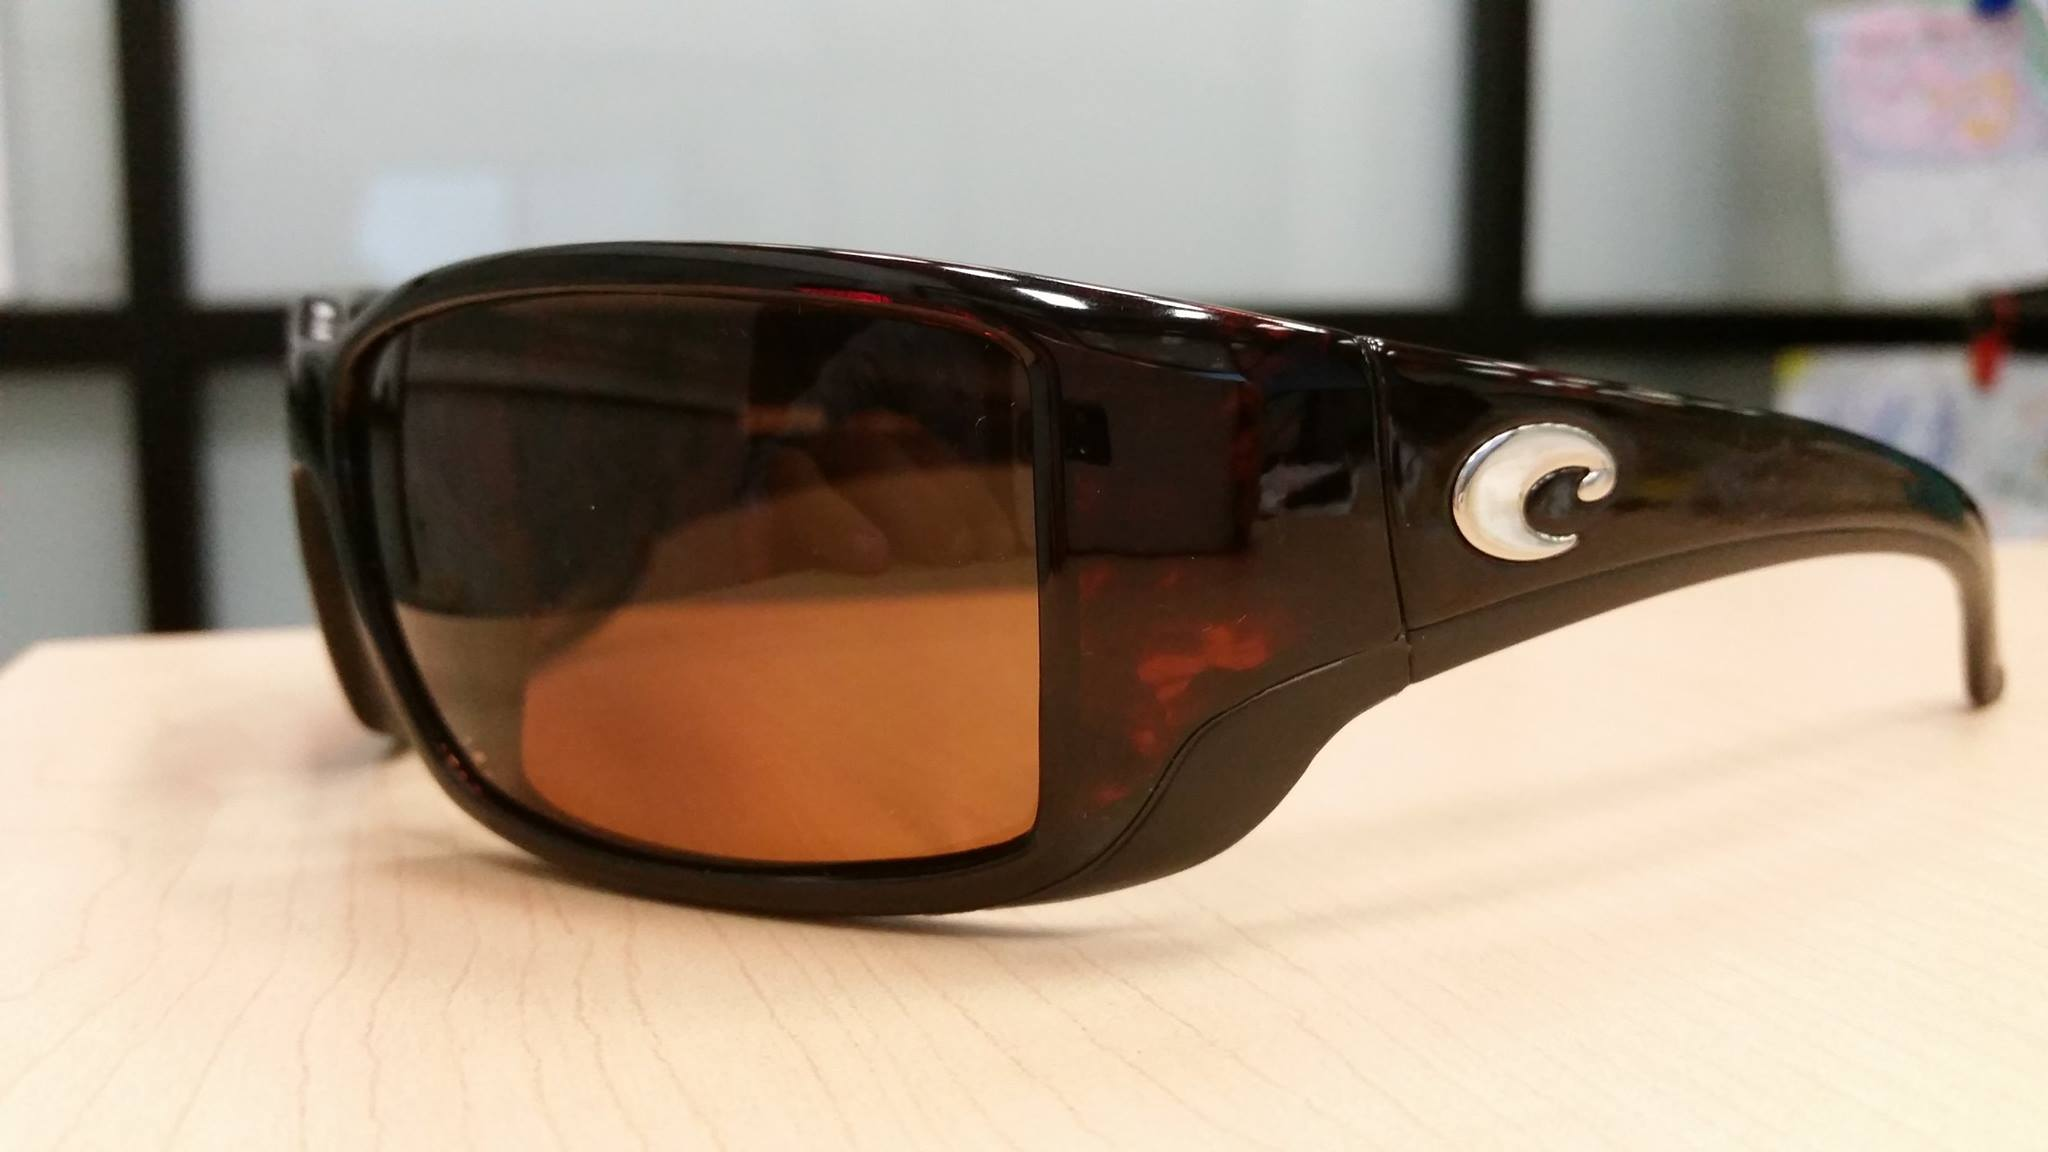 oakley polarized vs costa